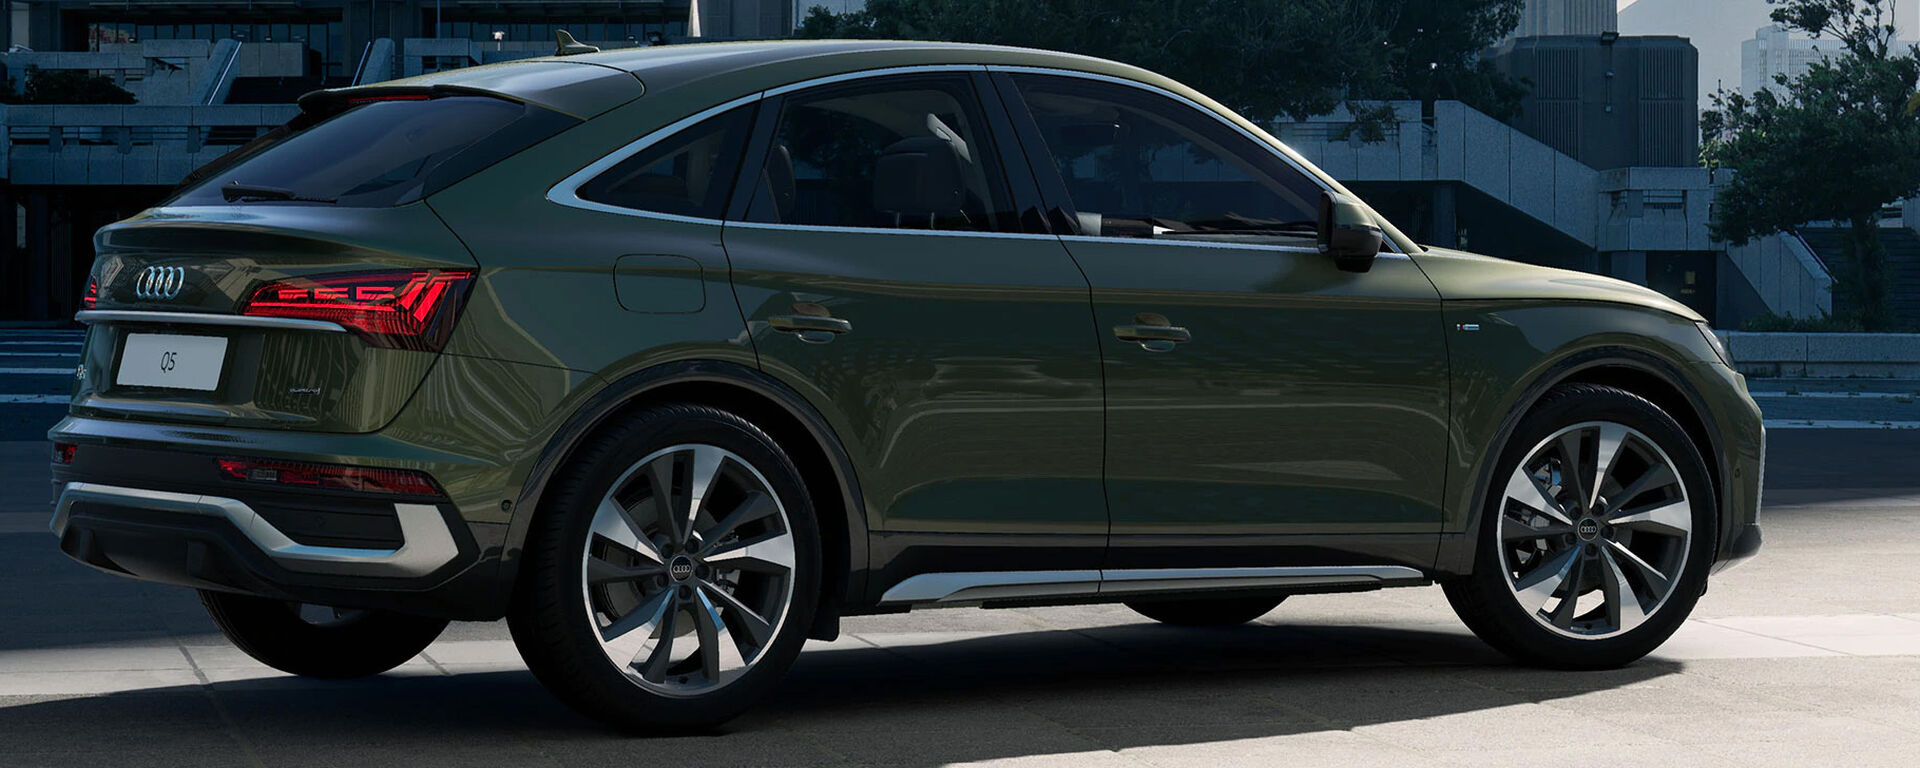 Audi Q5 Sportback 2021 in Distriktgrün Metallic